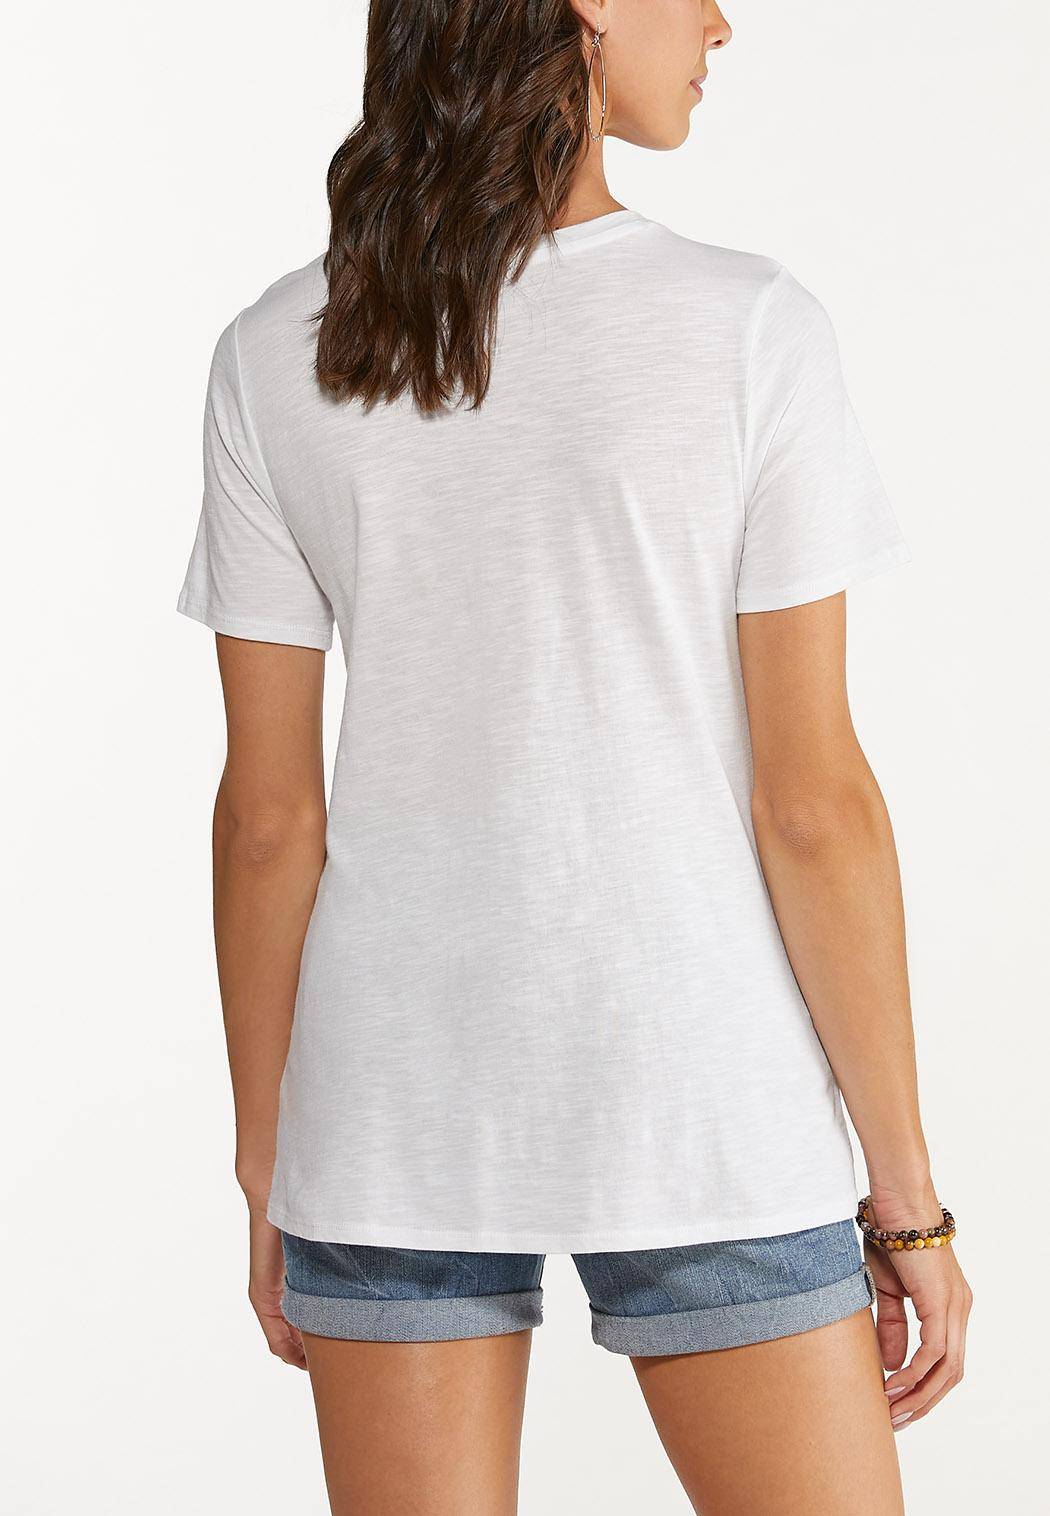 Take The Scenic Route Tee (Item #44644536)